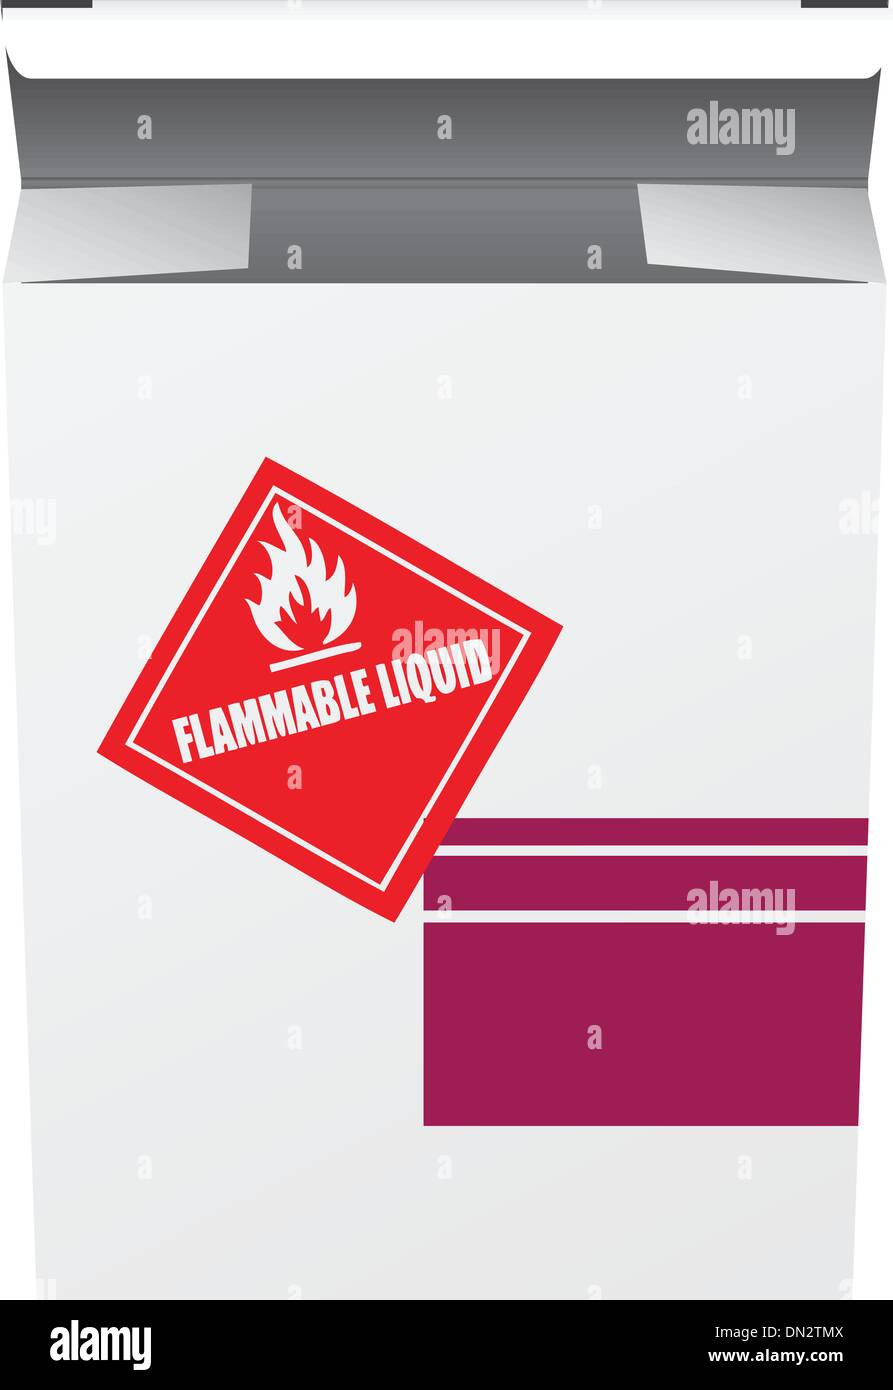 Box for Flammable Liquid - Stock Image